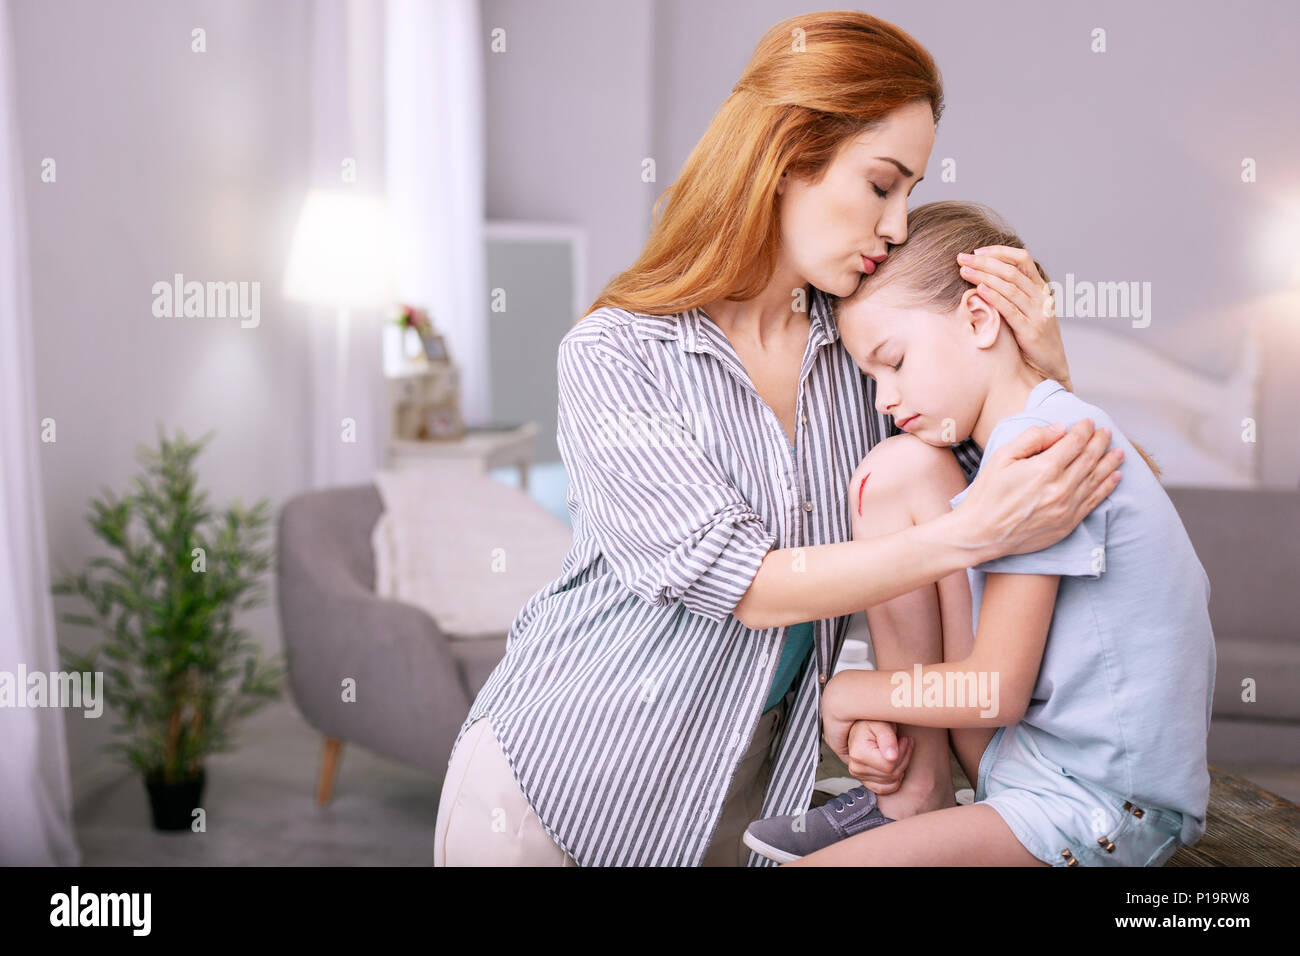 Pleasant loving mother kissing her child - Stock Image